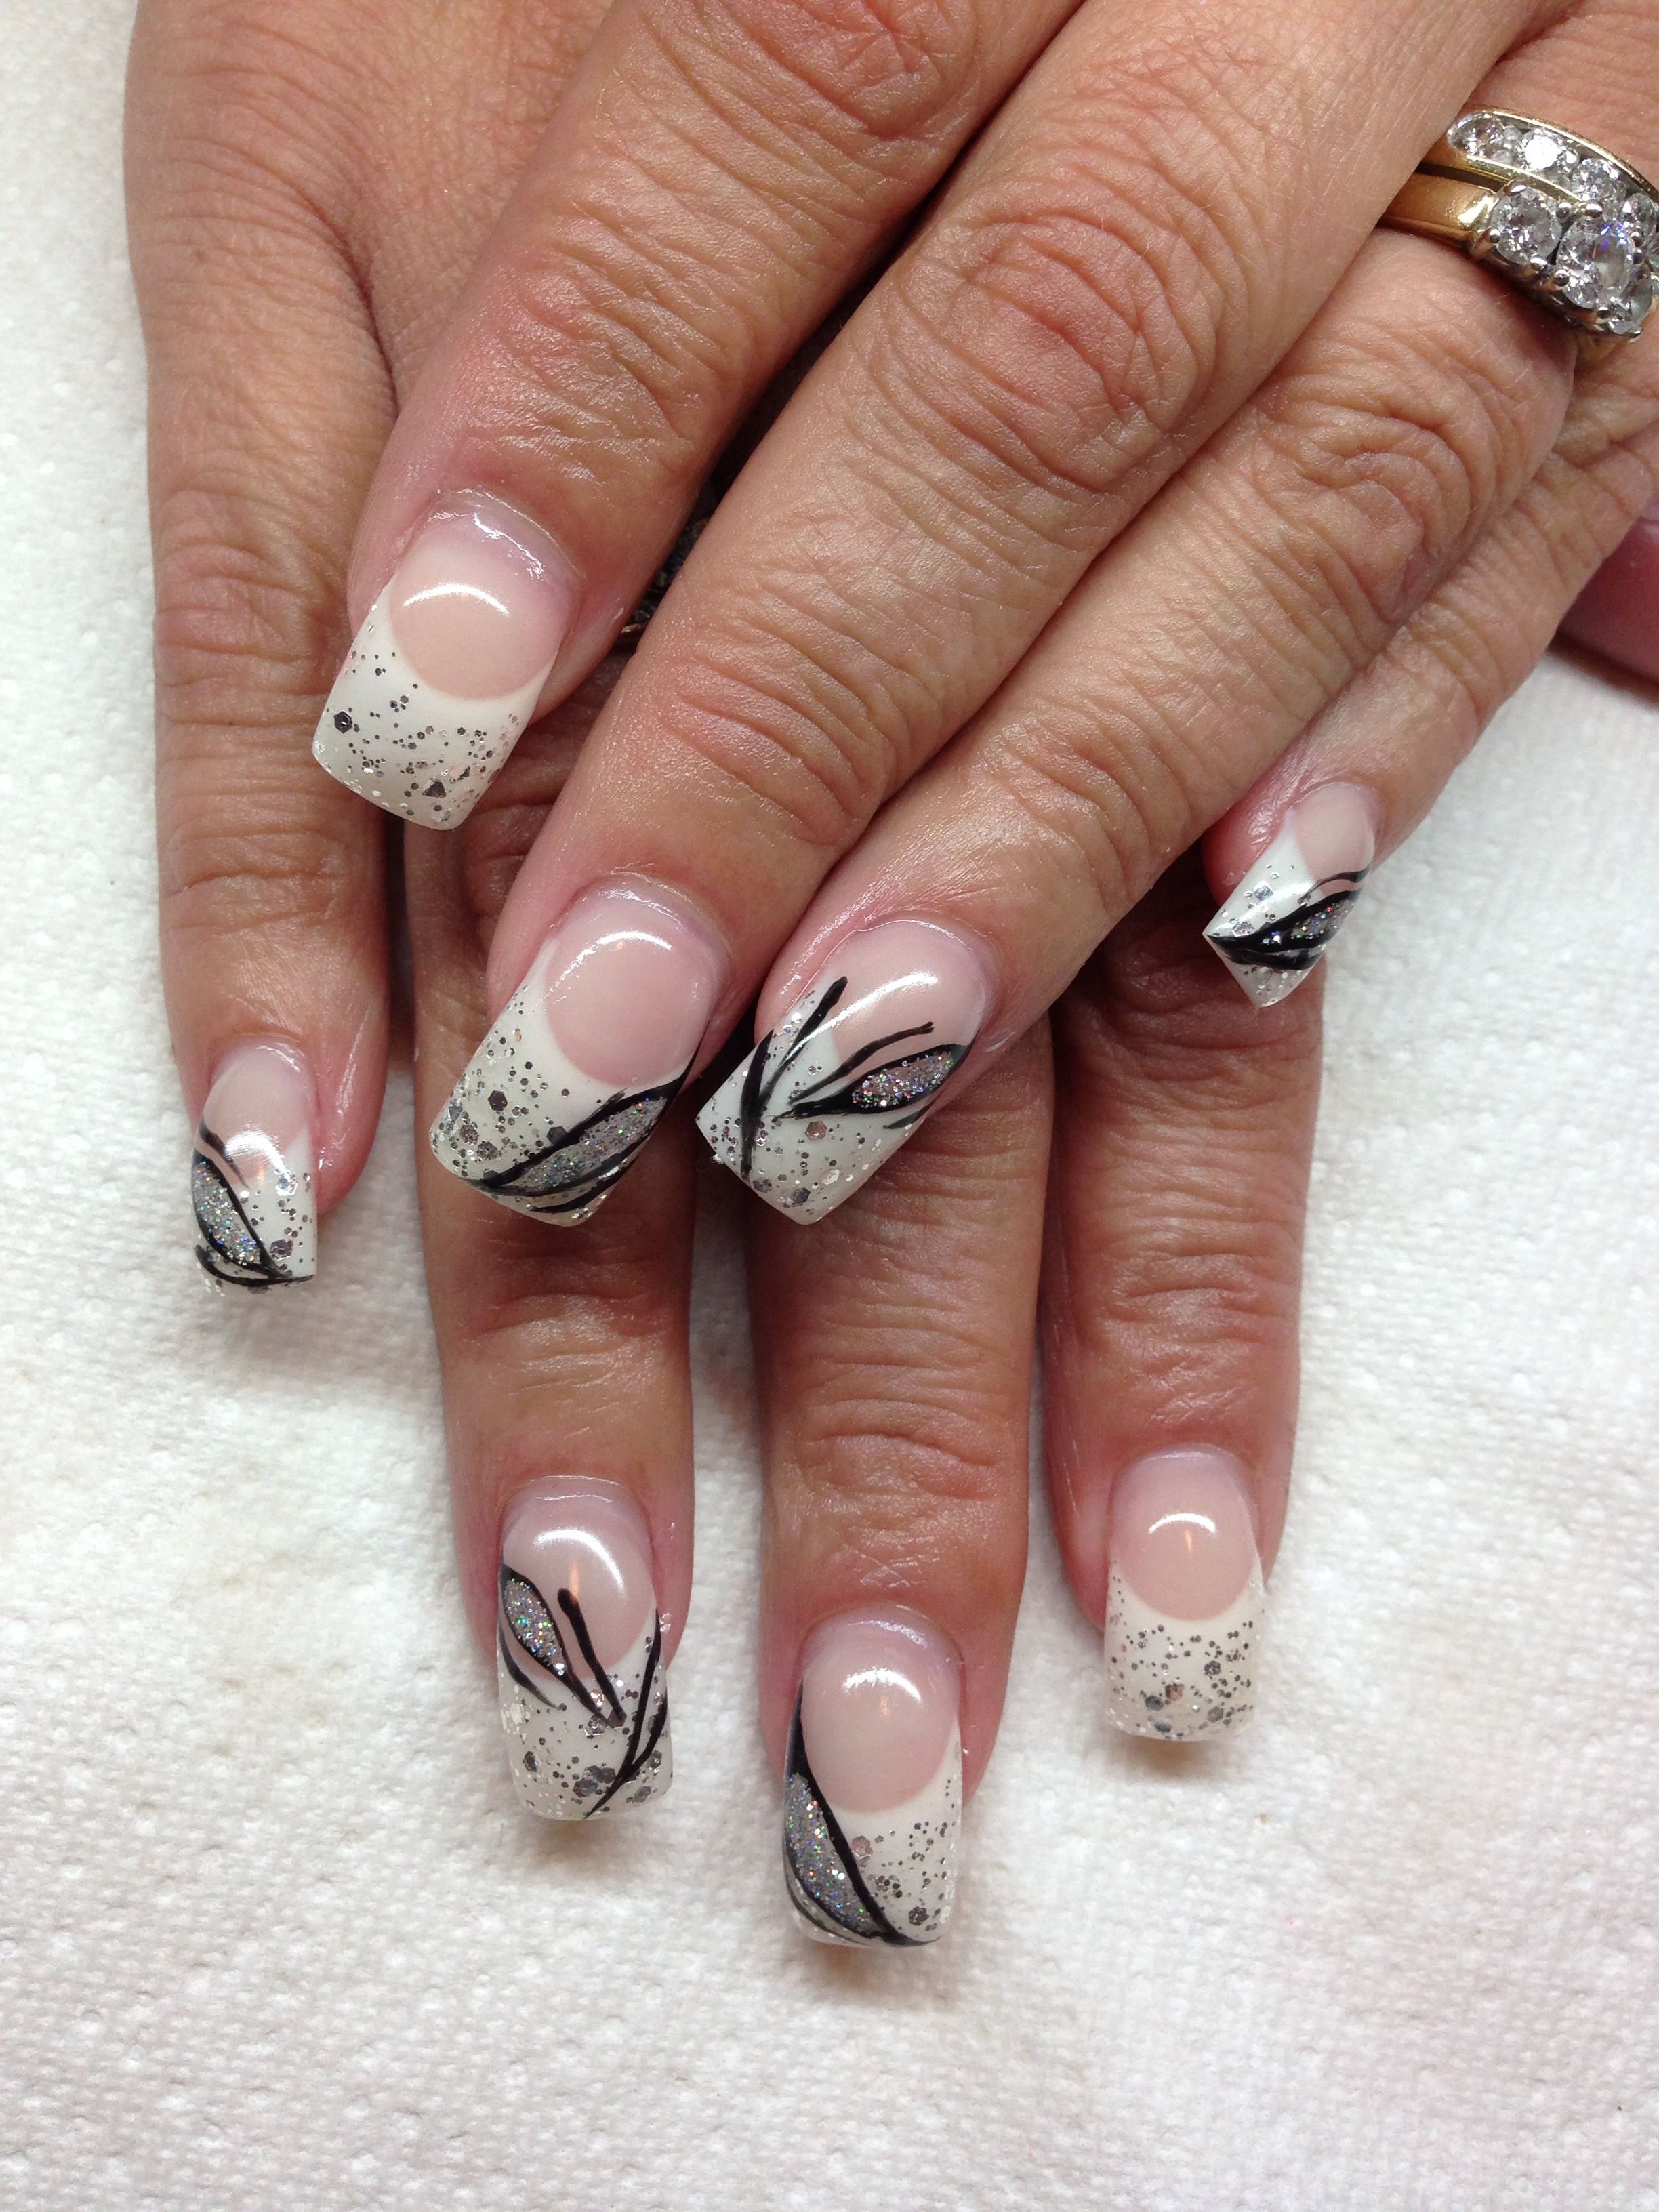 Gel Nails With Hand Drawn Design By Melissa Fox Nails Pinterest